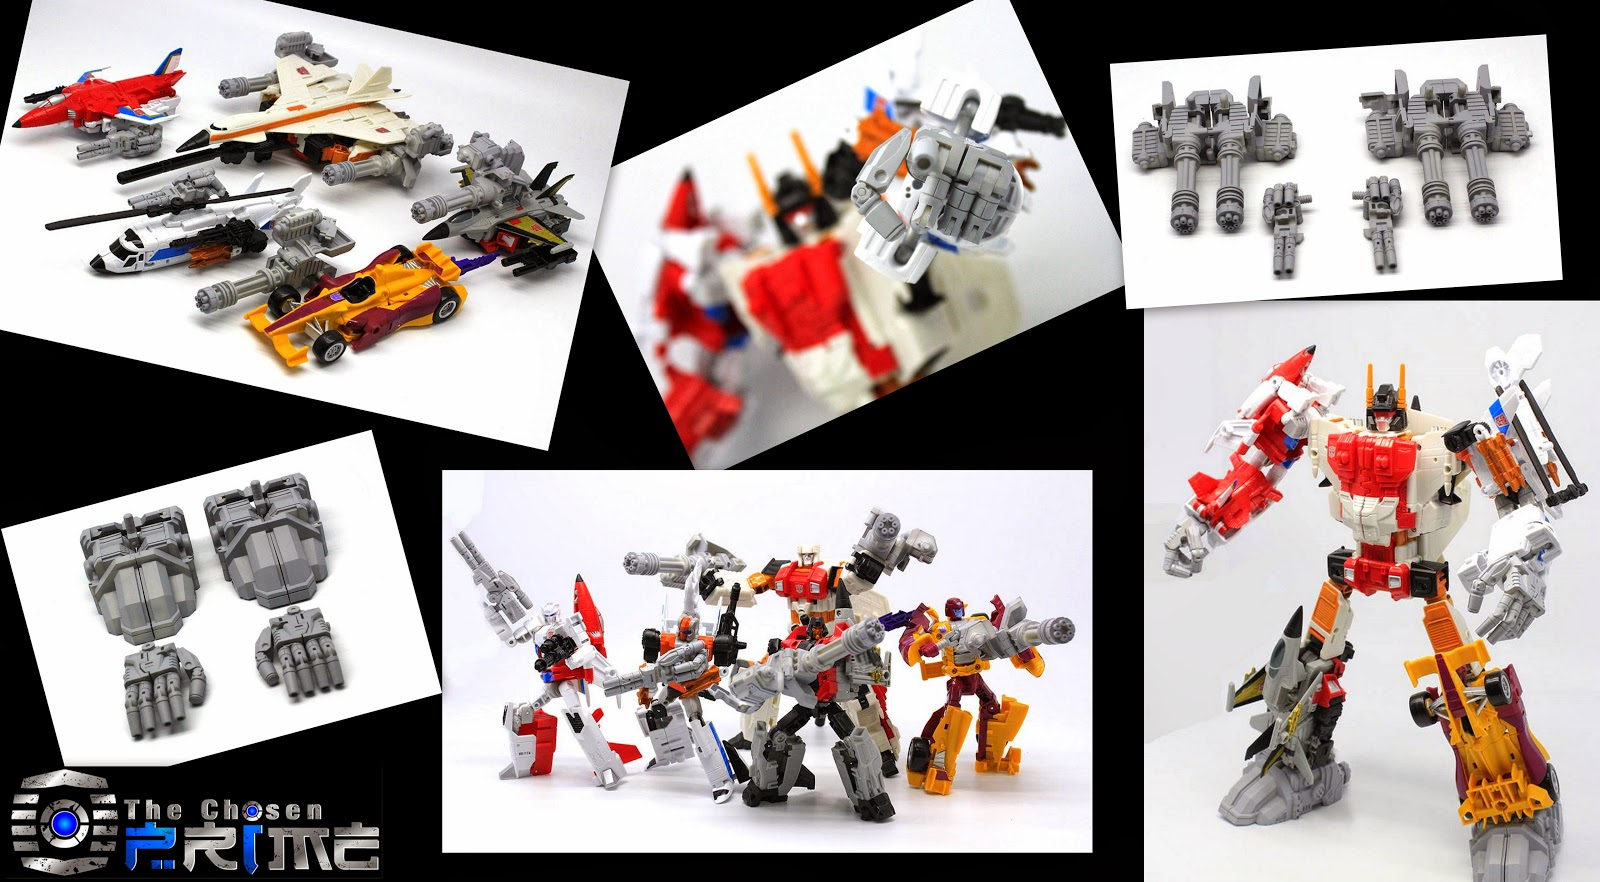 http://www.thechosenprime.com/search.asp?keyword=Combiner+Wars&search.x=0&search.y=0